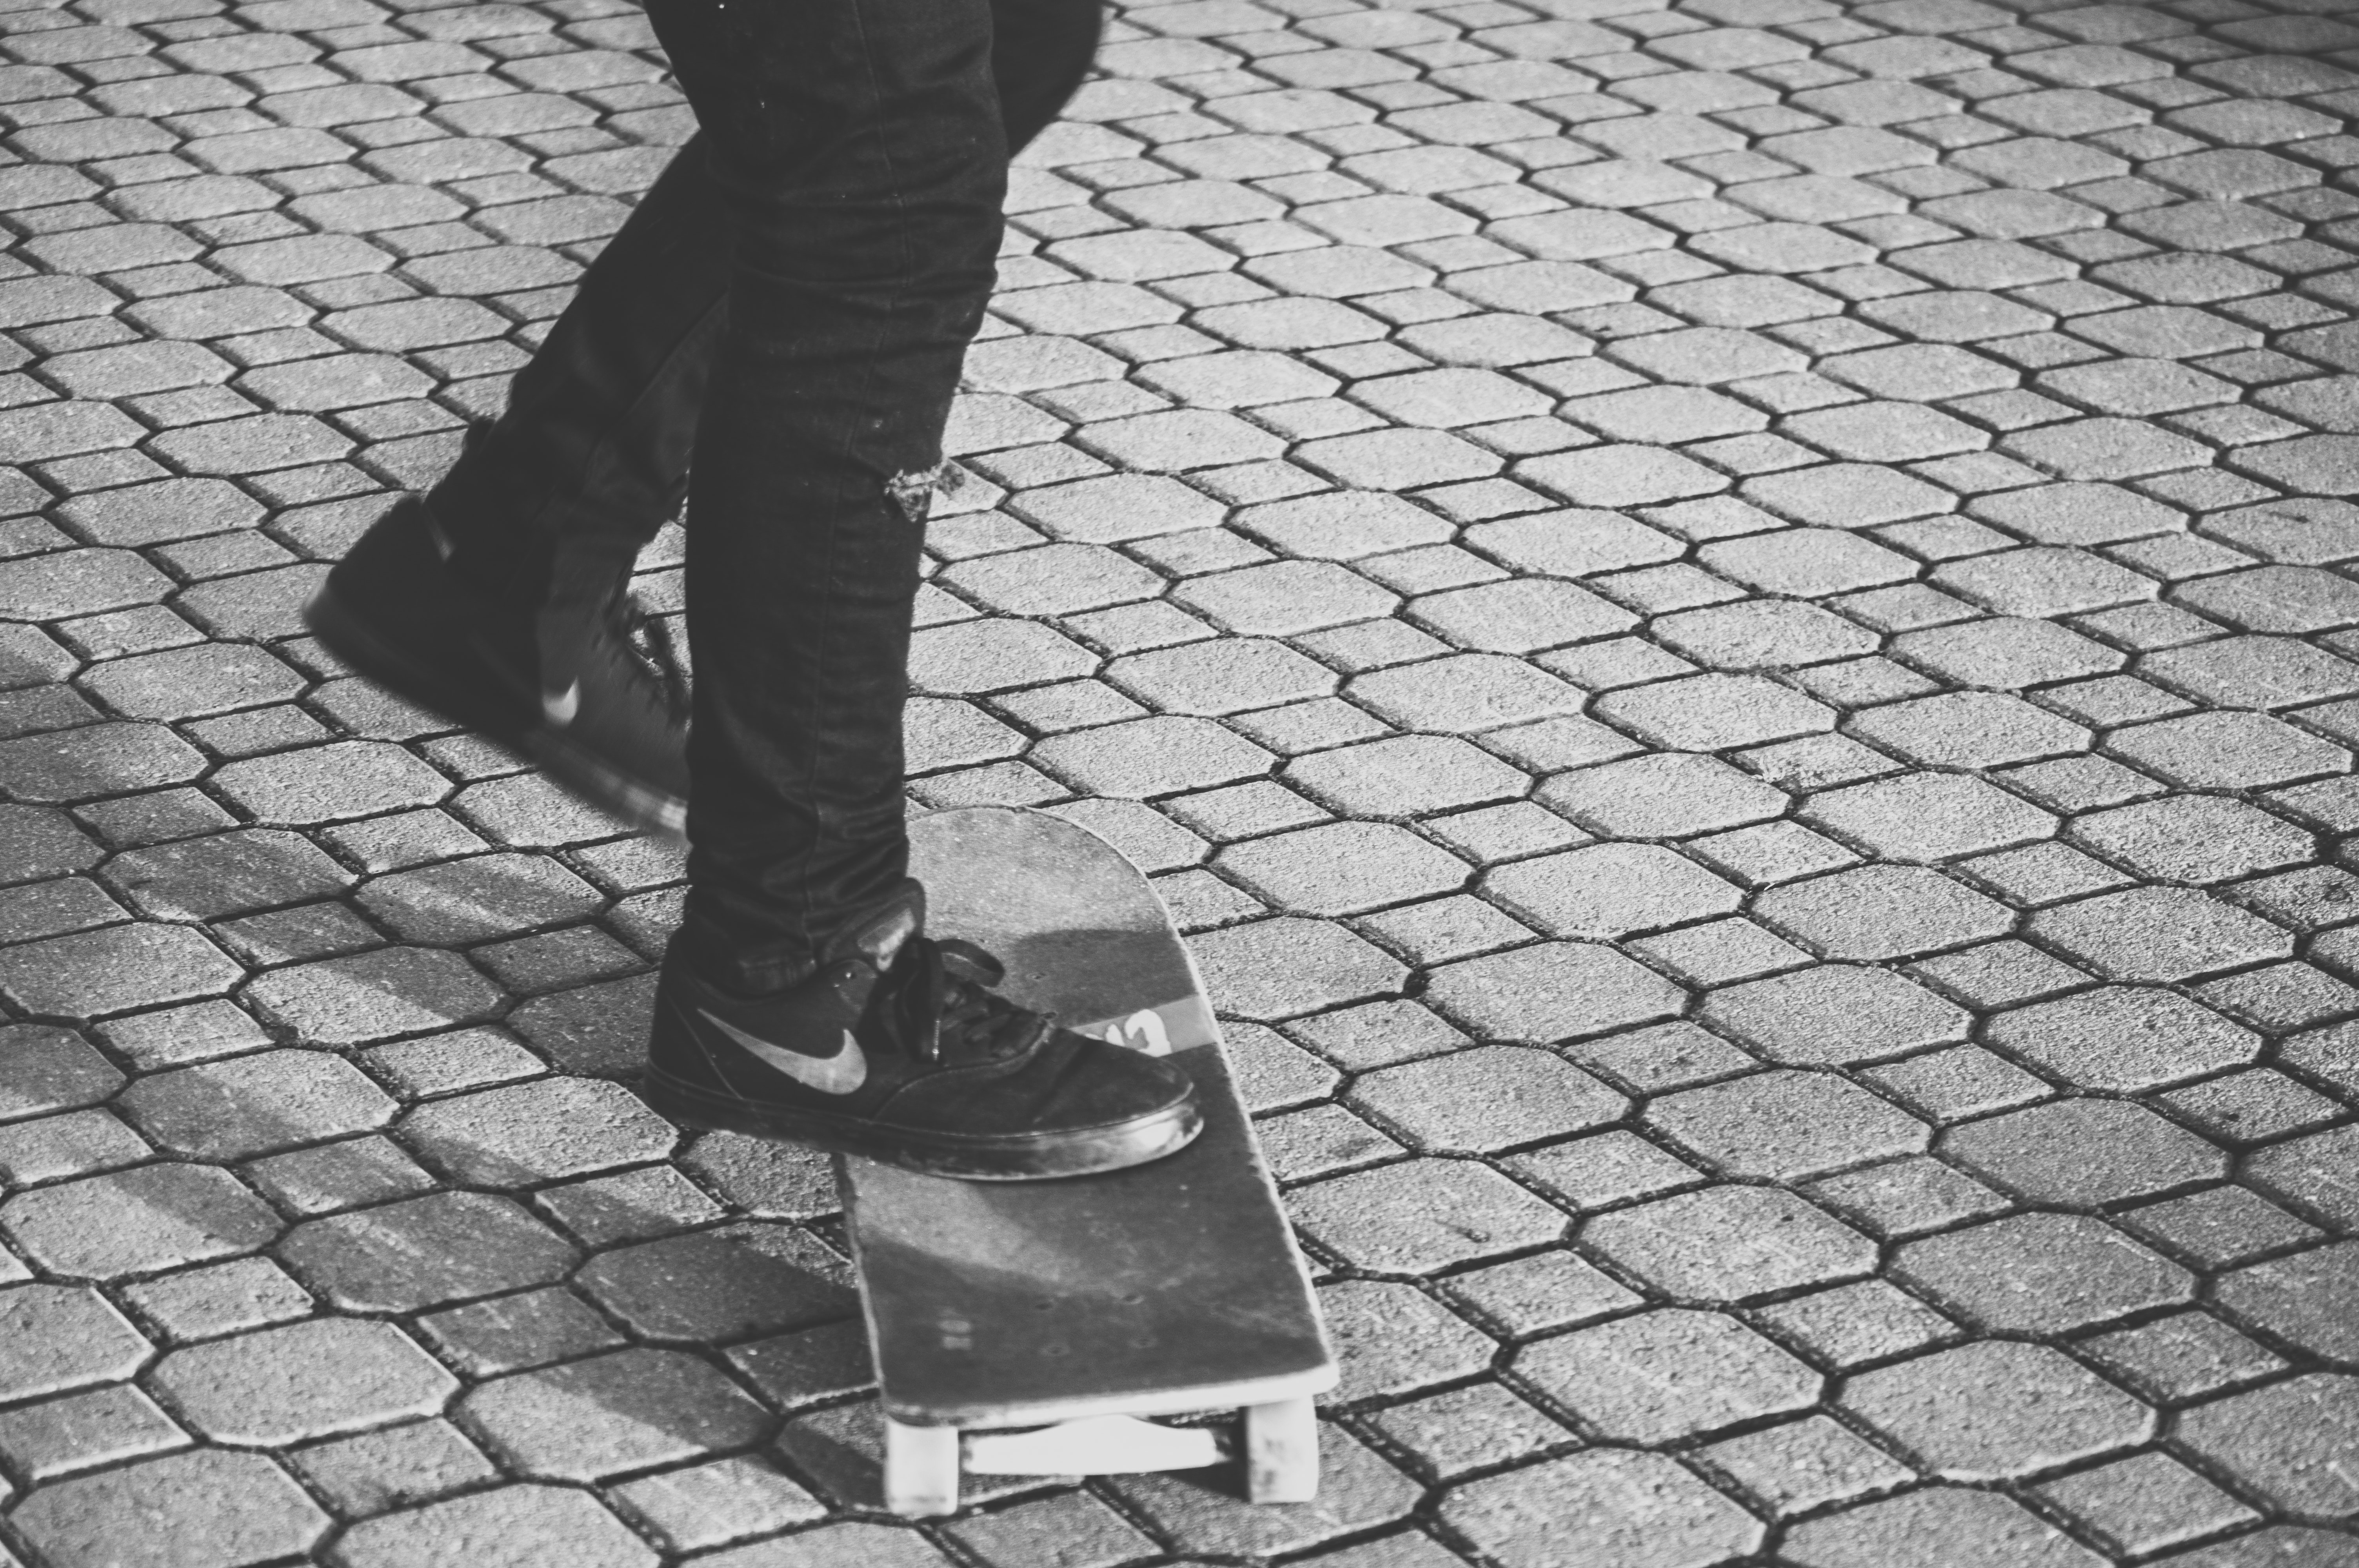 person about to ride his skateboard